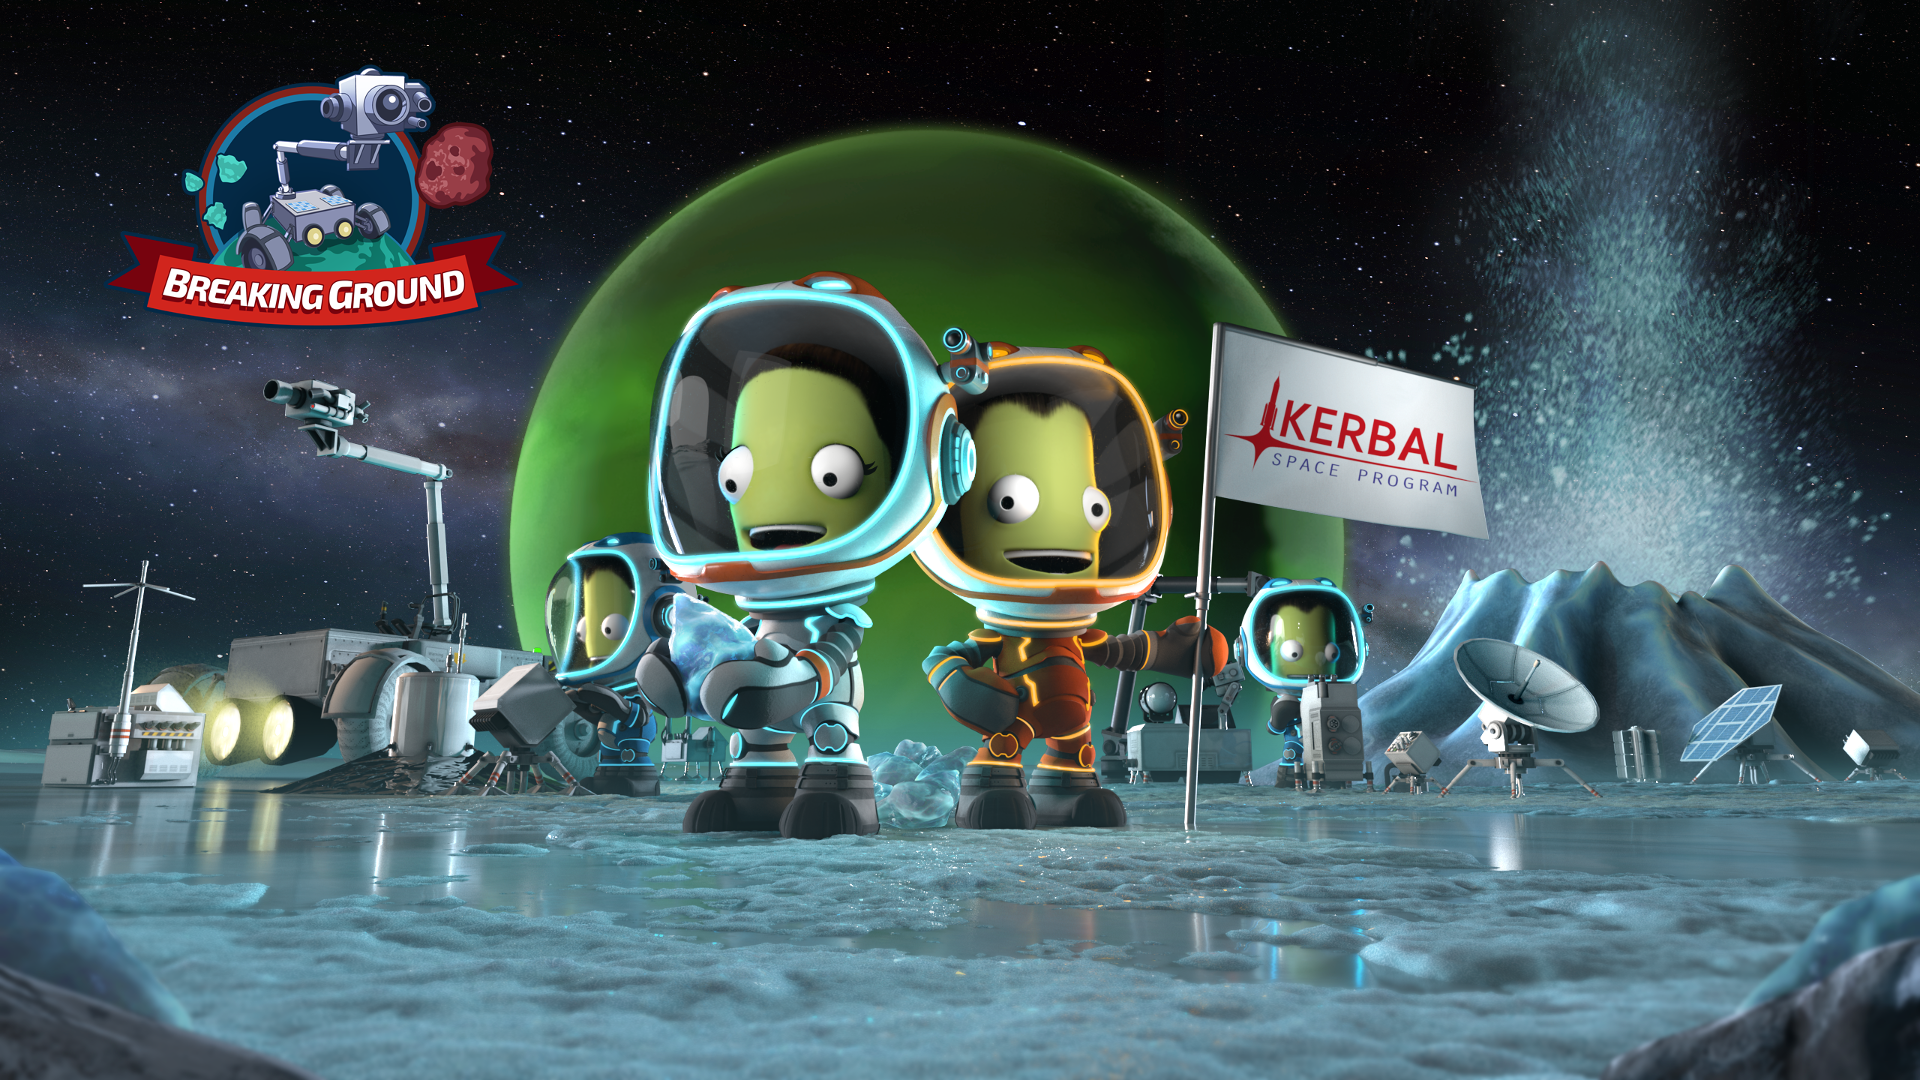 Kerbal Space Program: Breaking Ground Expansion is Now Available!